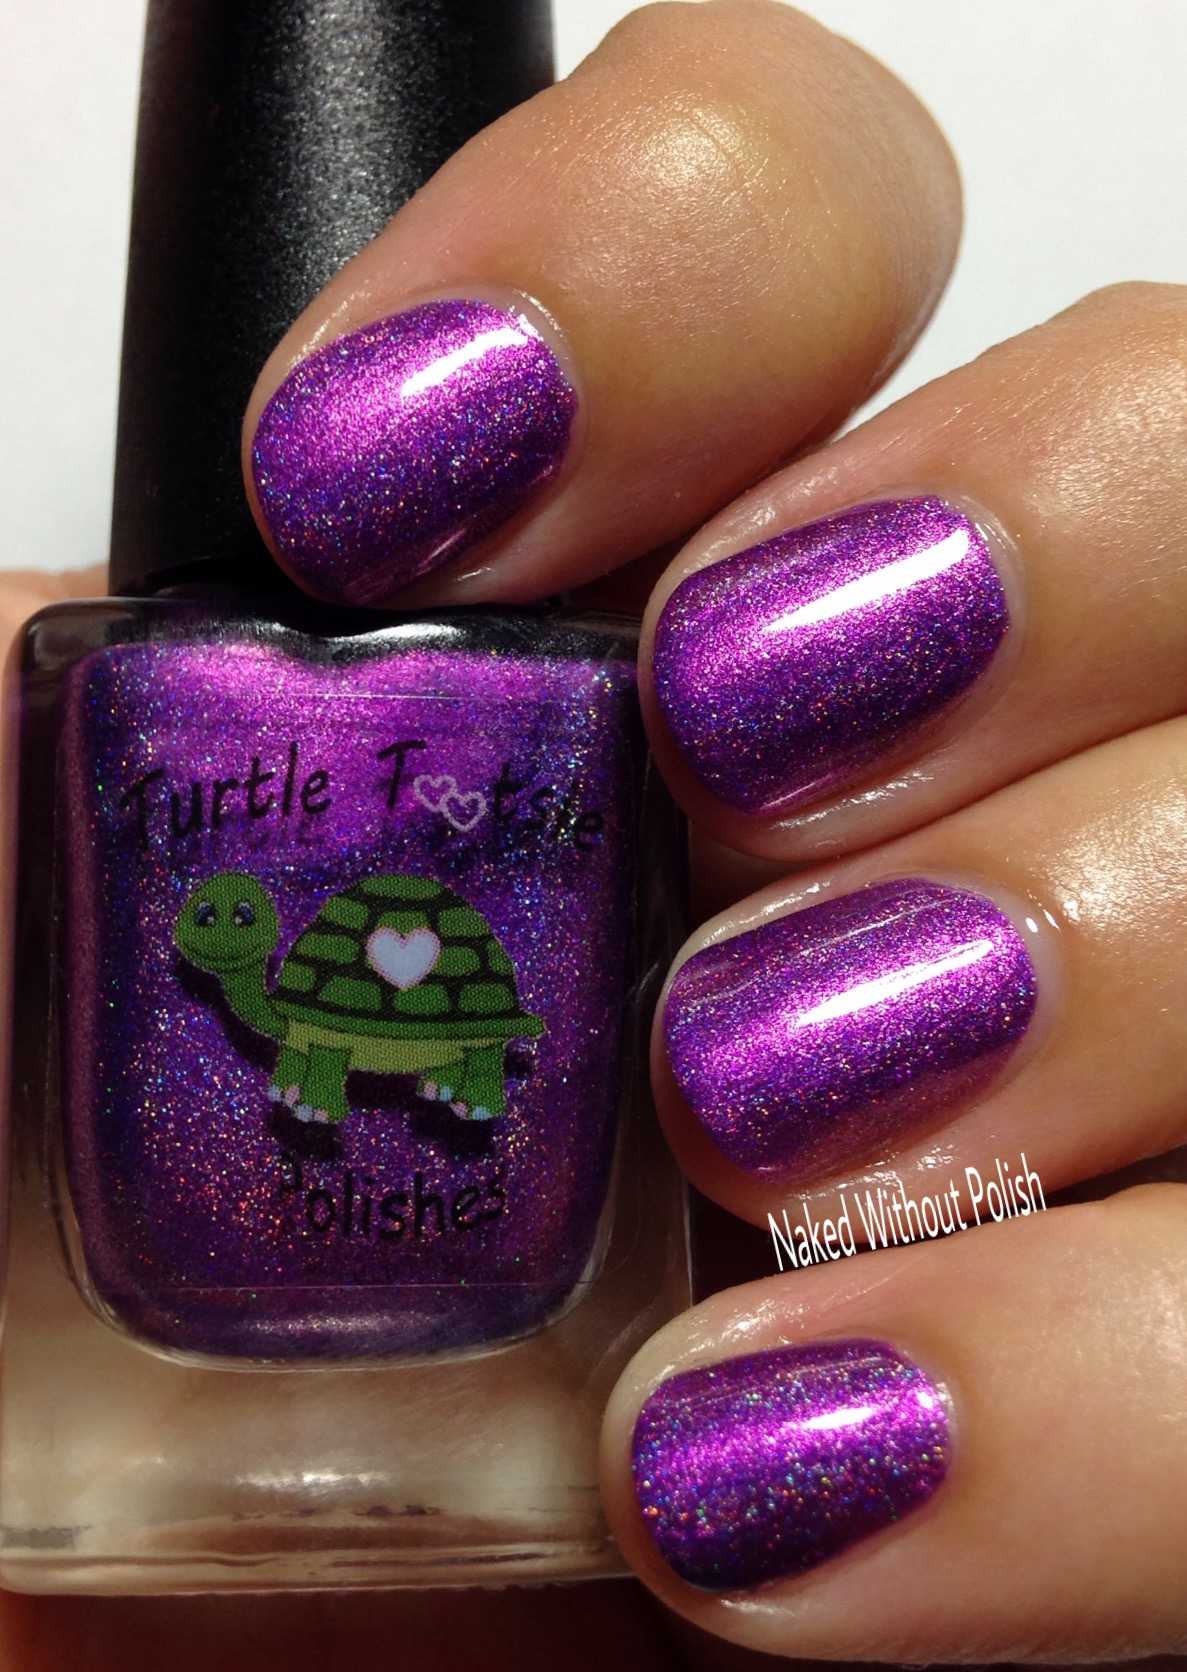 Turtle-Tootsie-Polishes-Hickey-from-Kenickie-11